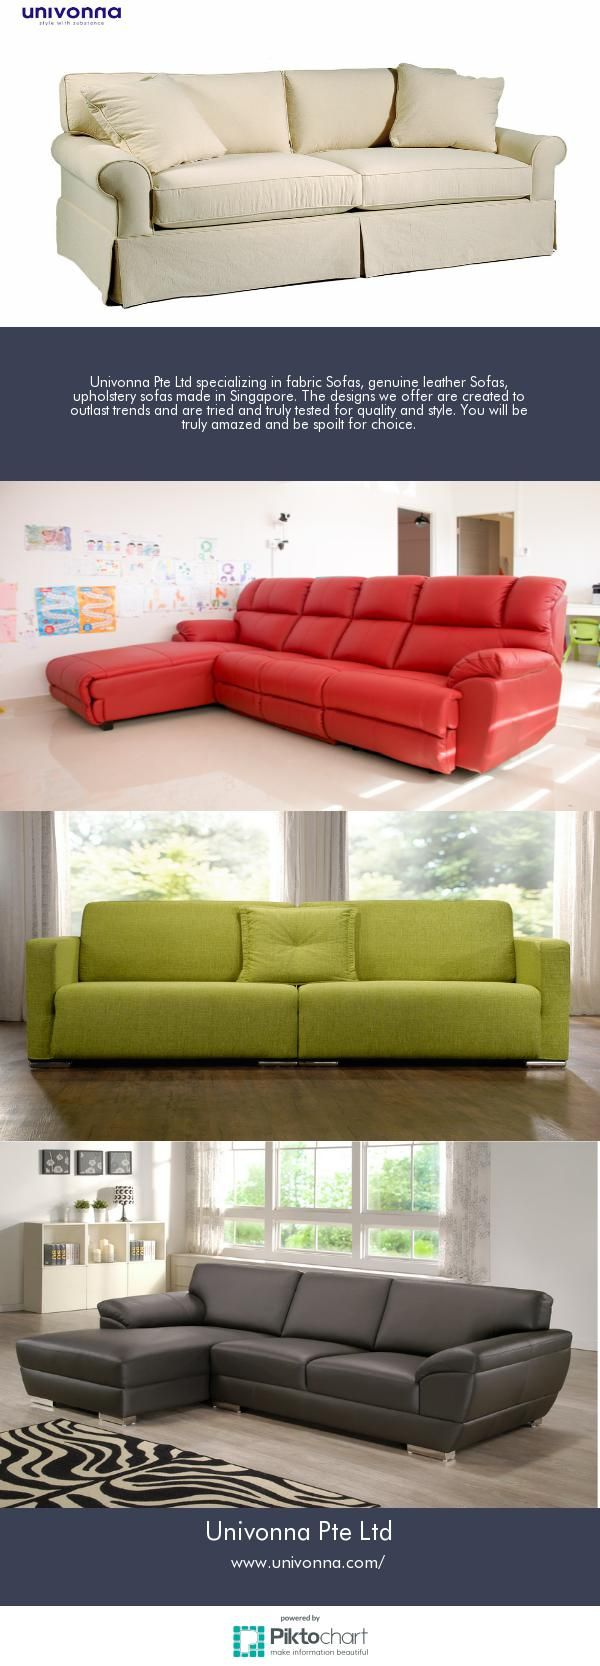 Buy Fabric Sofas- Beds and Mattress Online at - Univonna